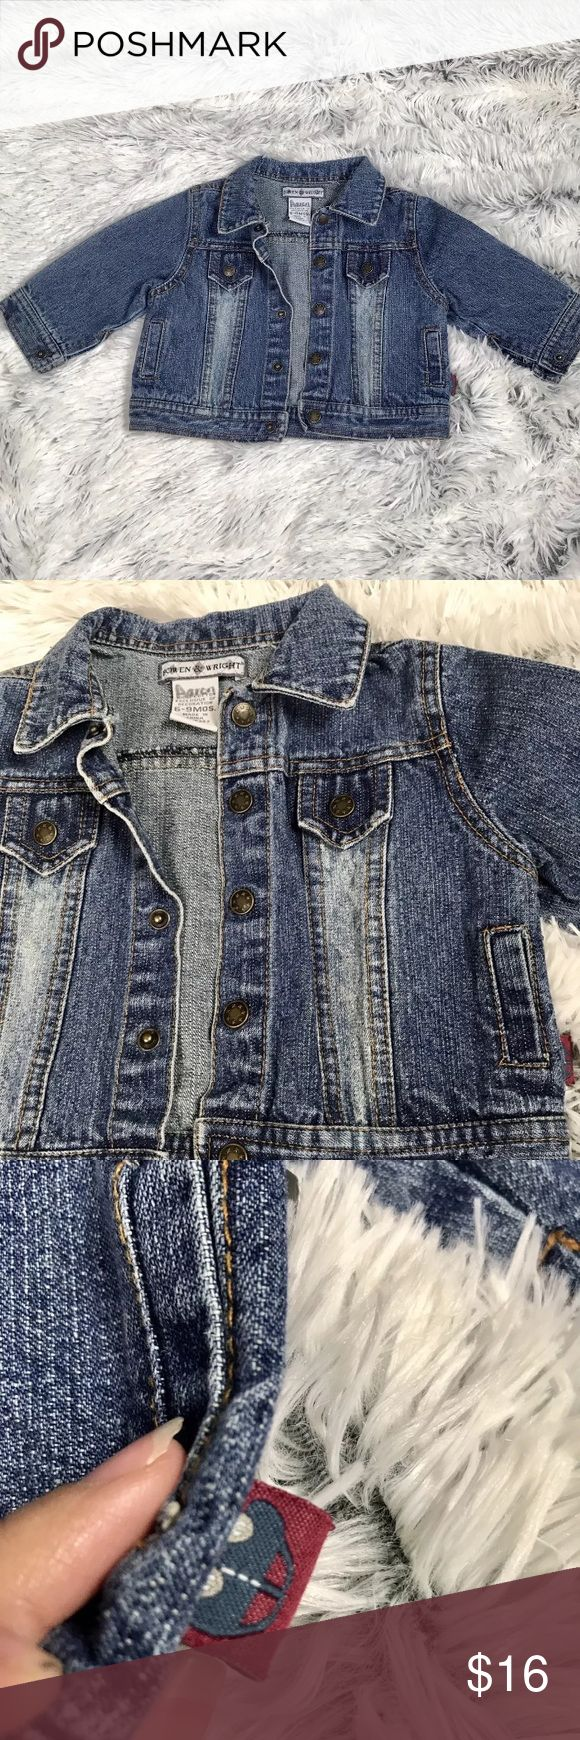 """Bowen and Wright Baby Denim Jean Jacket Beautiful, like new condition, Bowen and Weight baby denim jacket. Buttons have cute stats details. Jacket features two pockets. Color is a soft blue wash, almost vintage color. One fault is pictured - name """"Aaron"""" on tag. All buttons are snaps including sleeve button. **UPDATE: I've been able to remove most of the name from label and will upload comparison picture tonight. Bowen and Wright Jackets & Coats Jean Jackets"""